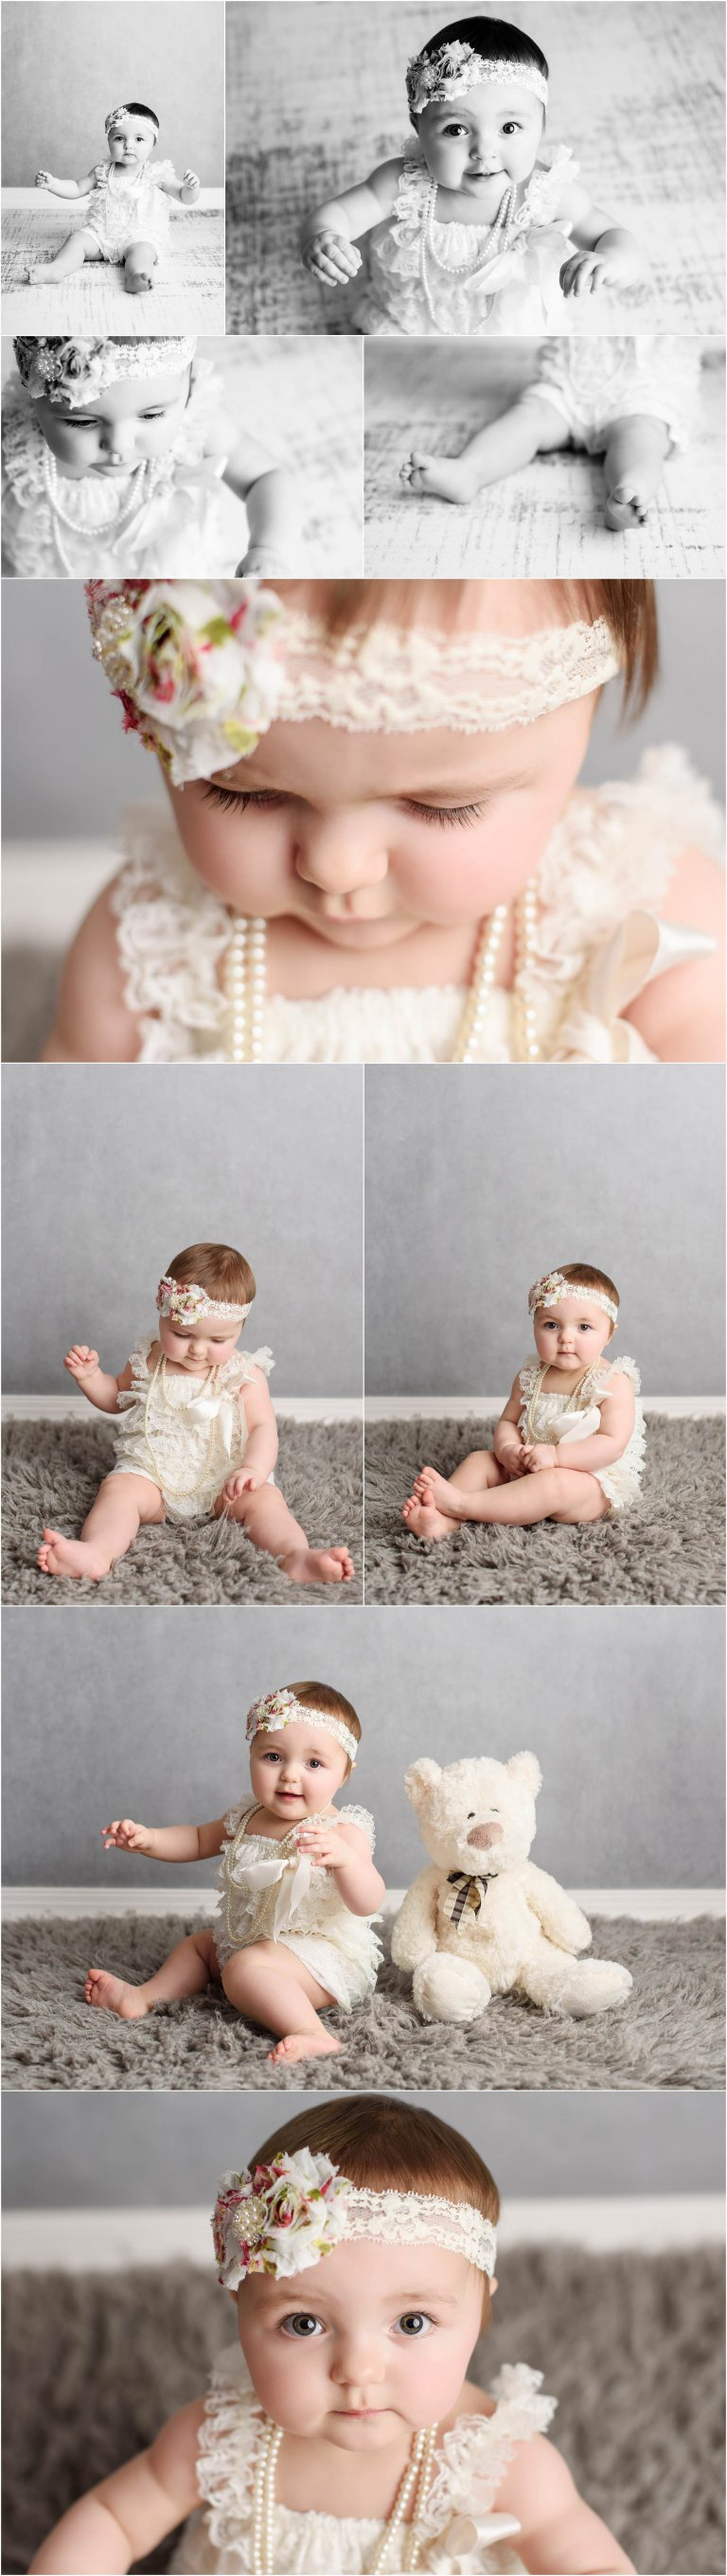 Girl First Birthday Photos with lace outfit by Crystal Satriano Photography in Moscow PA